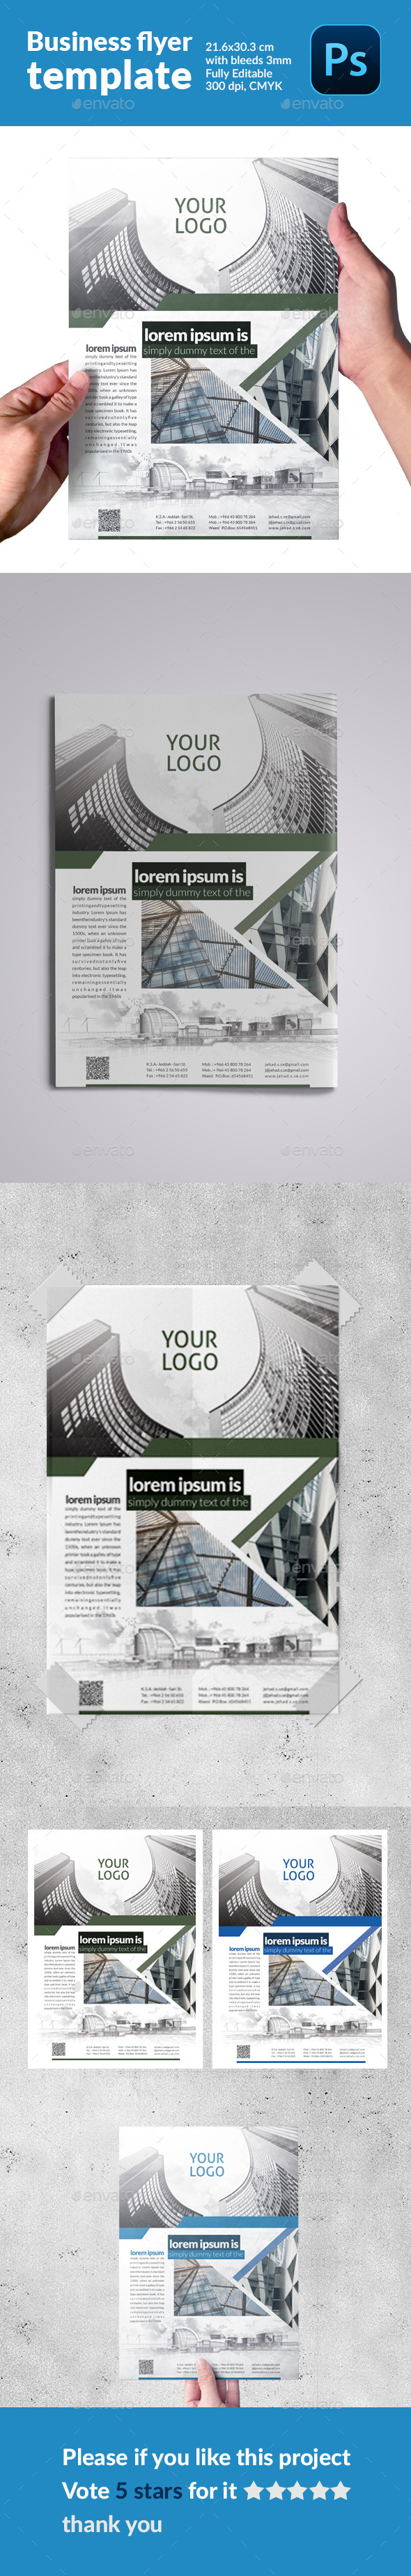 GraphicRiver Business flyer template 11877916